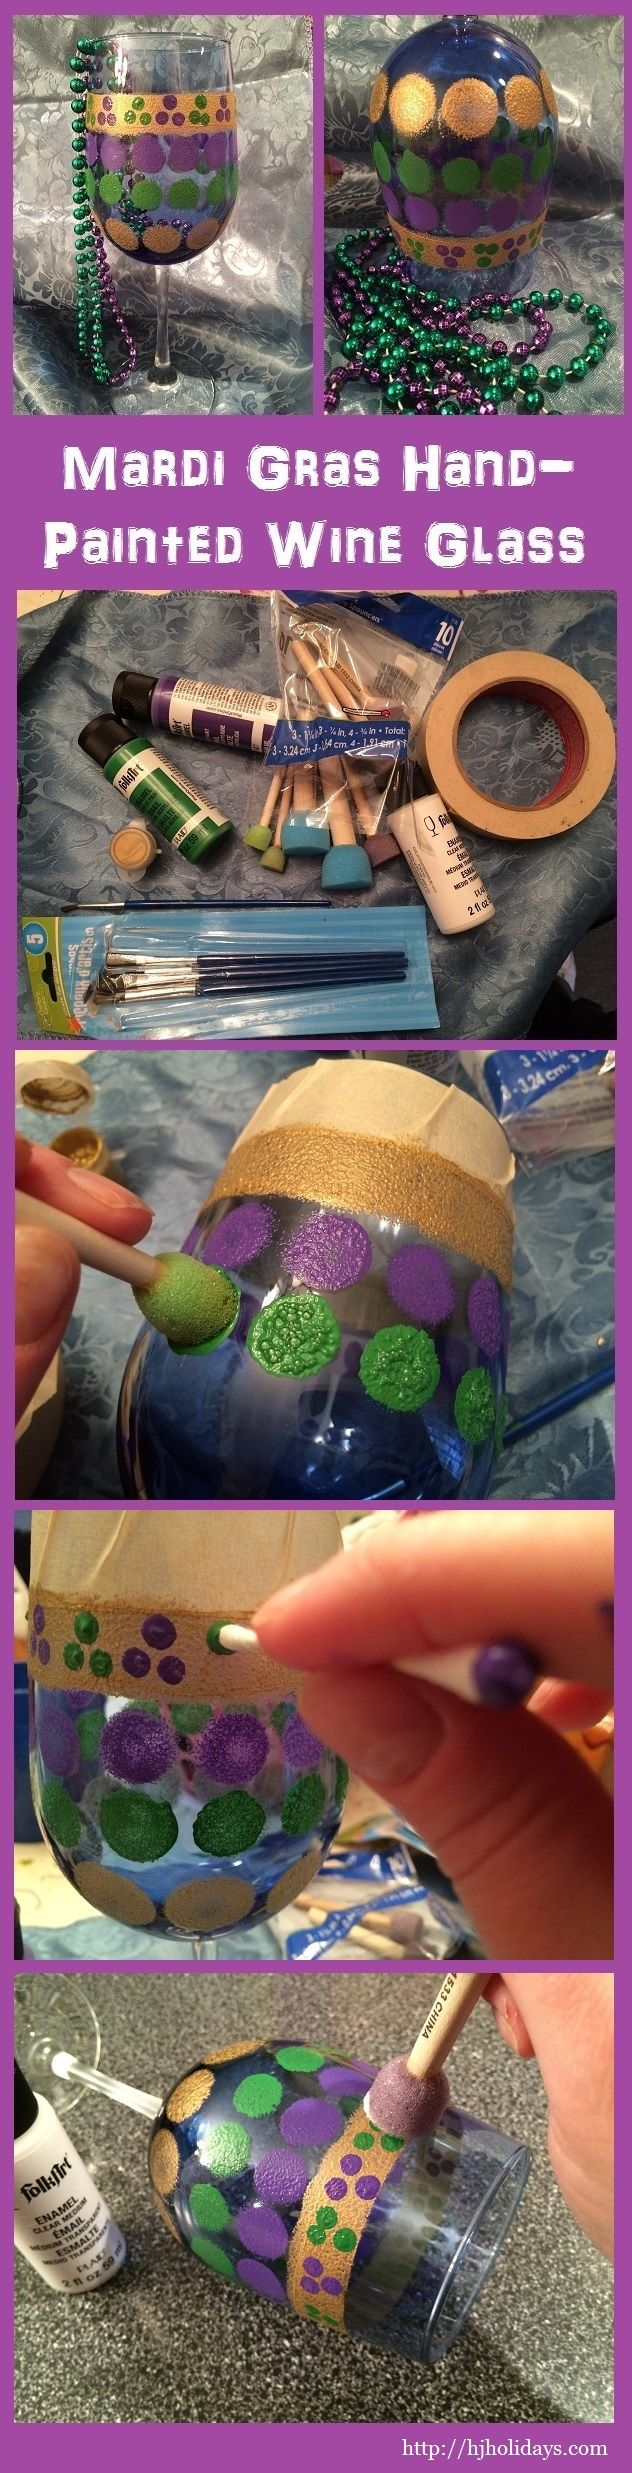 Mardi Gras Hand Painted Wine Glass Tutorial http://hjholidays.com/diy-crafts